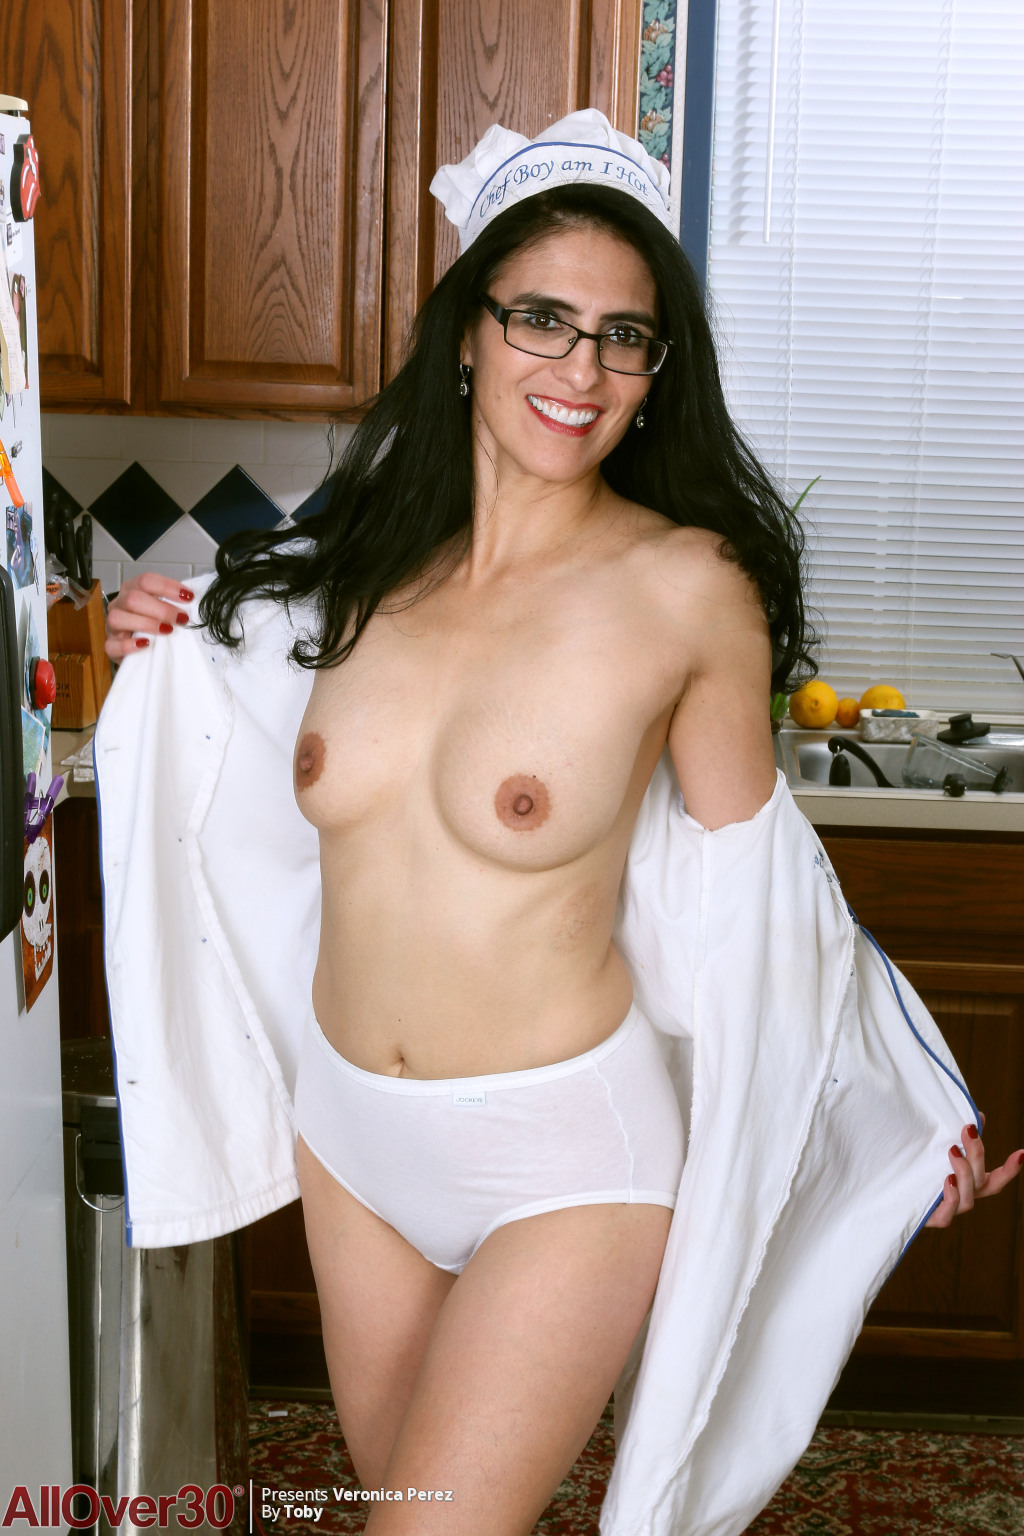 Allover30Freecom- Hot Older Women - 47 Year Old Veronica -1270